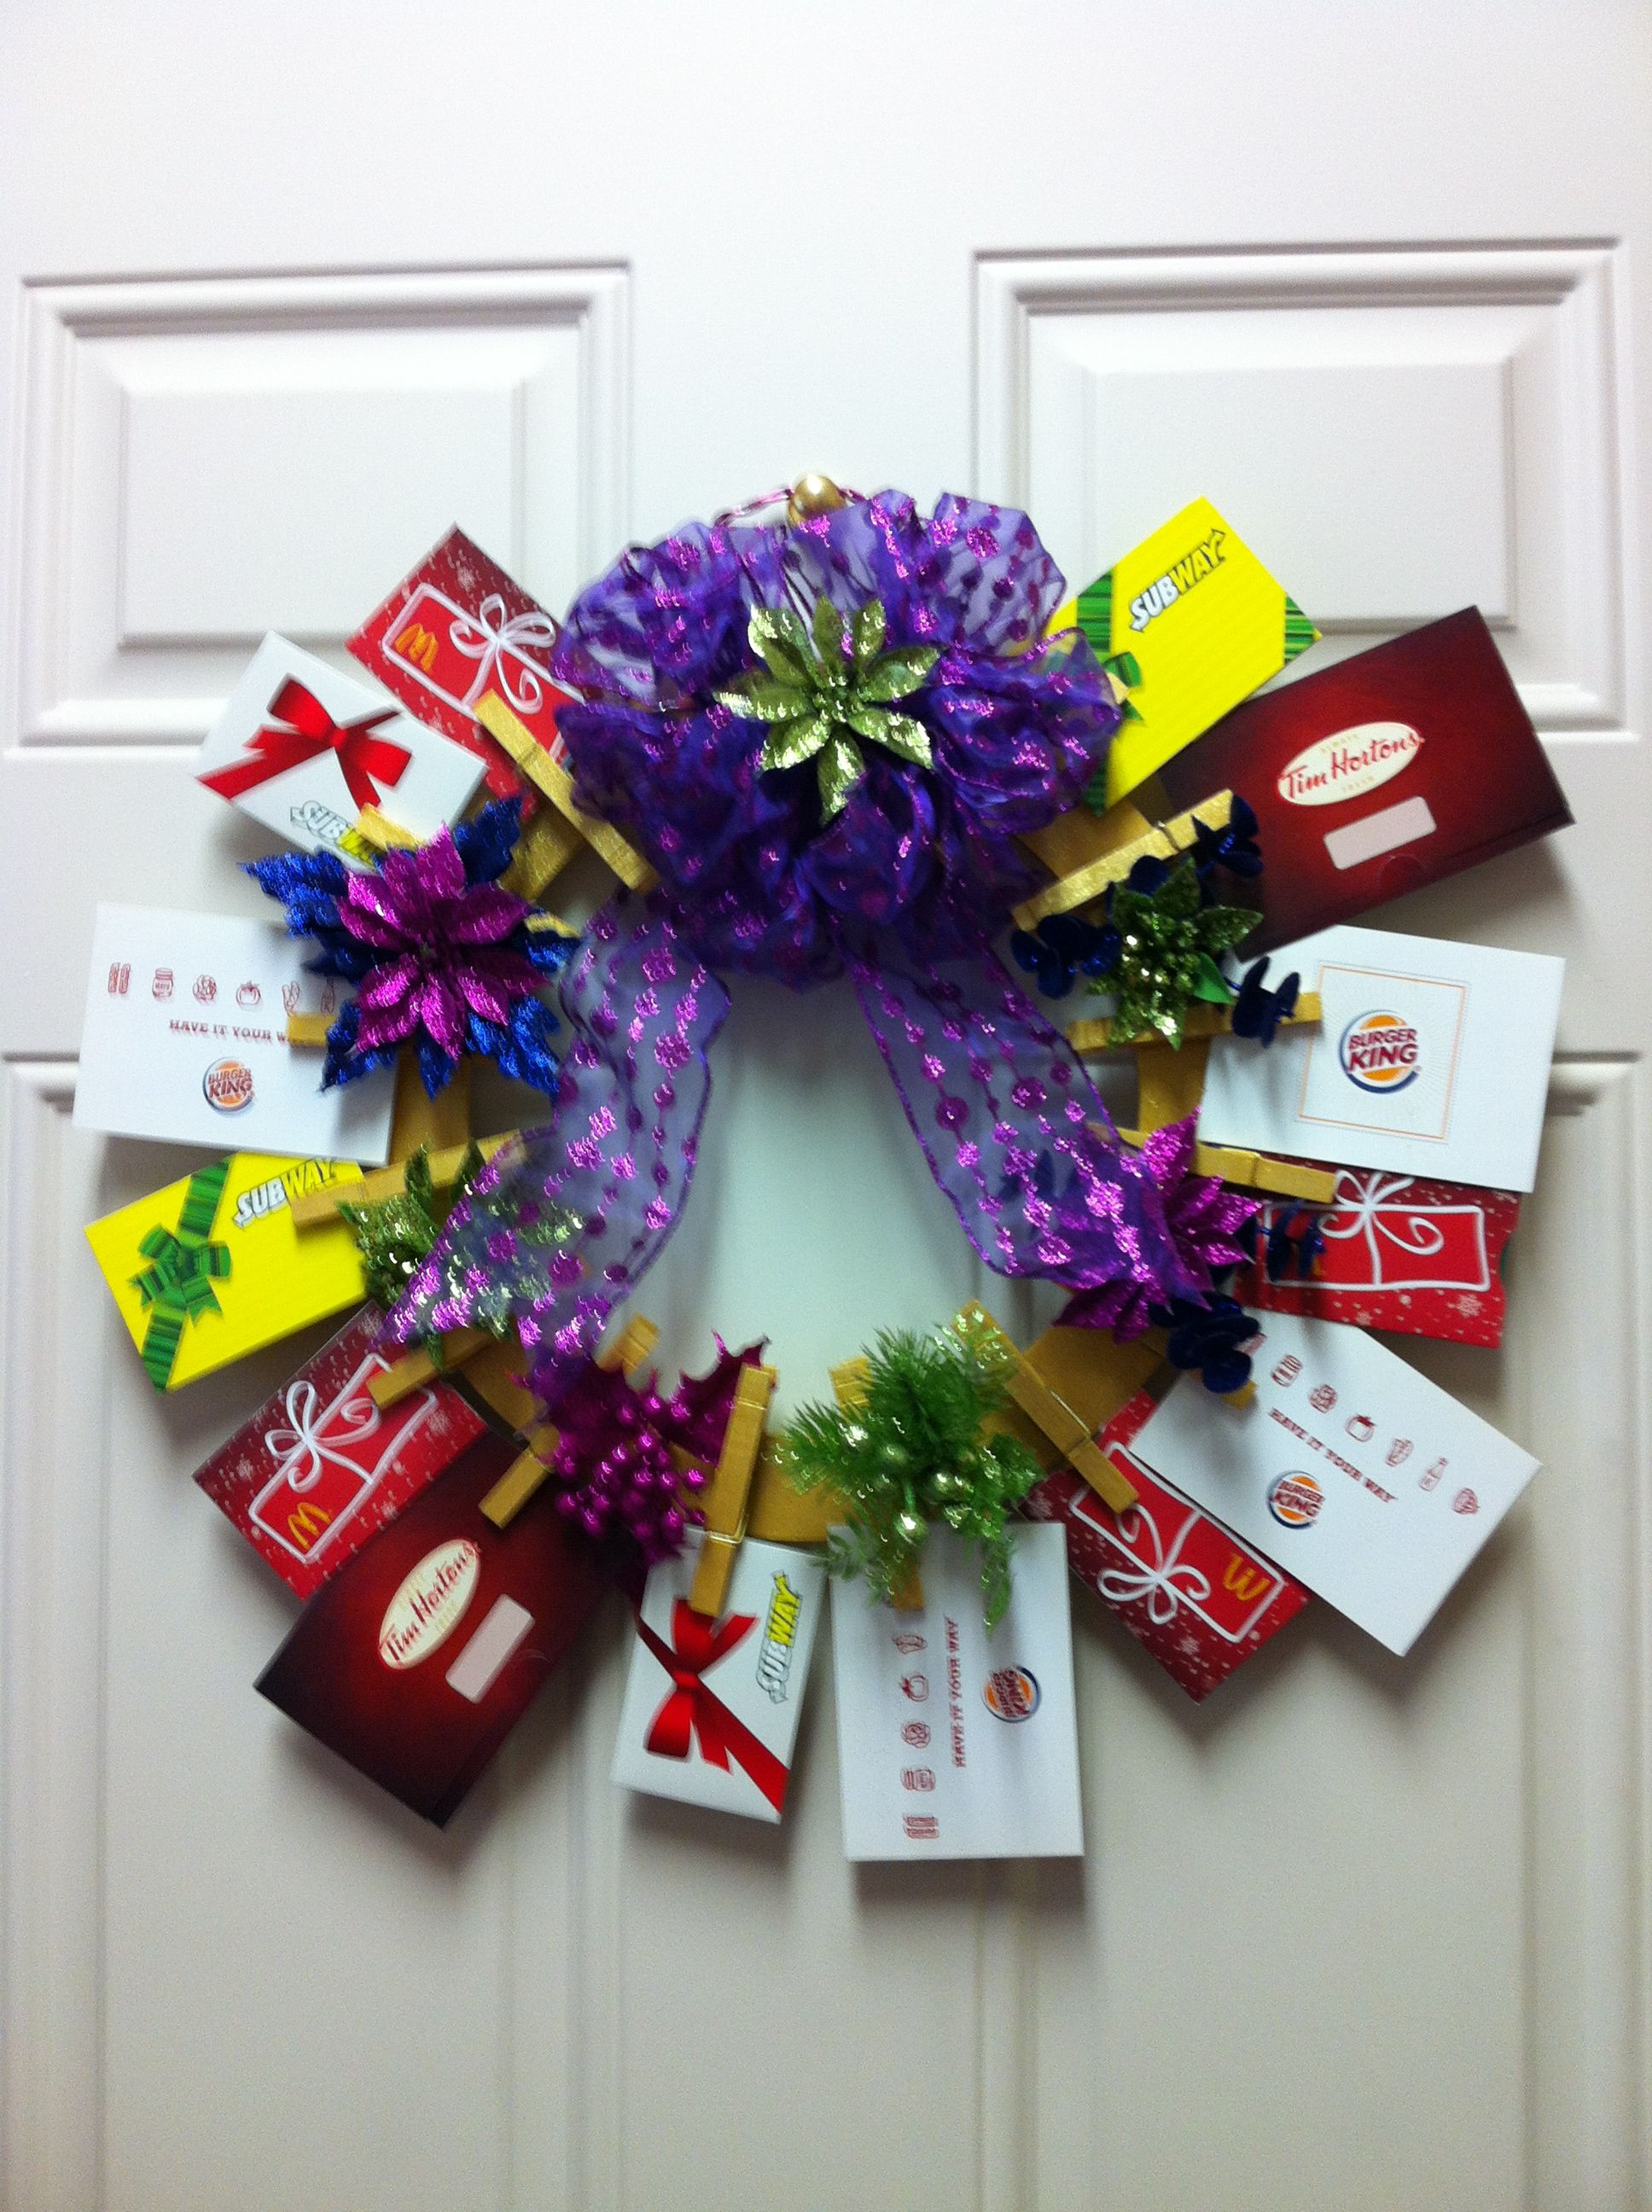 Gift card tree ideas pinterest - Gift Card Wreath